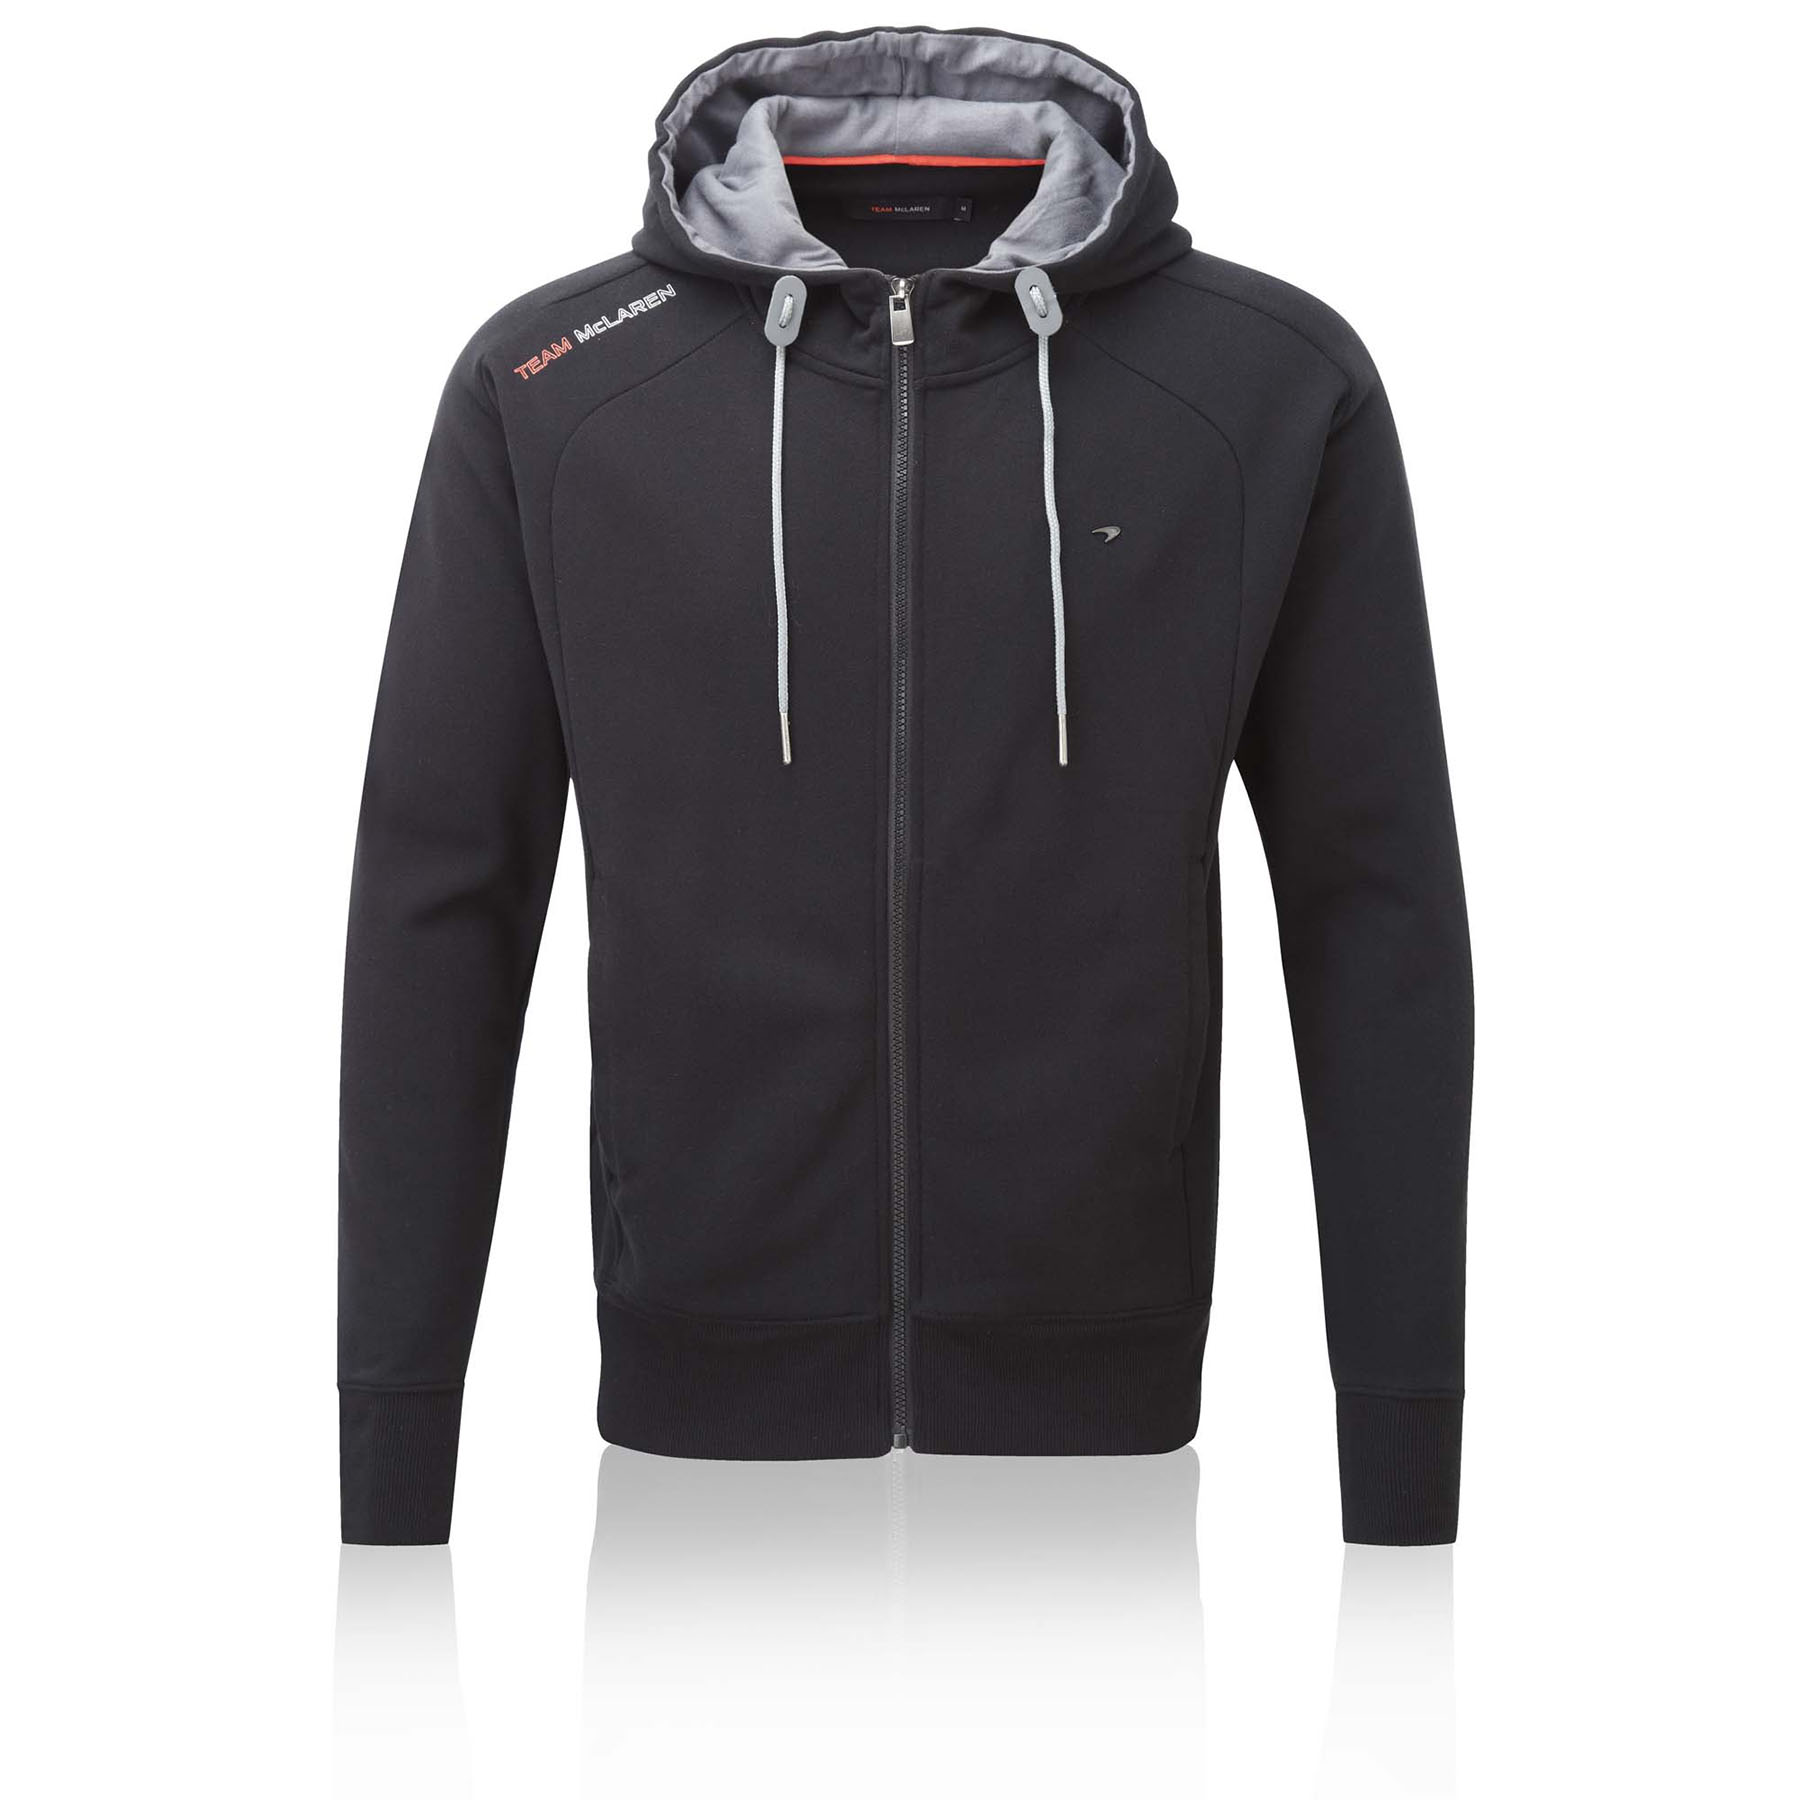 McLaren Mercedes Hooded Sweatshirt